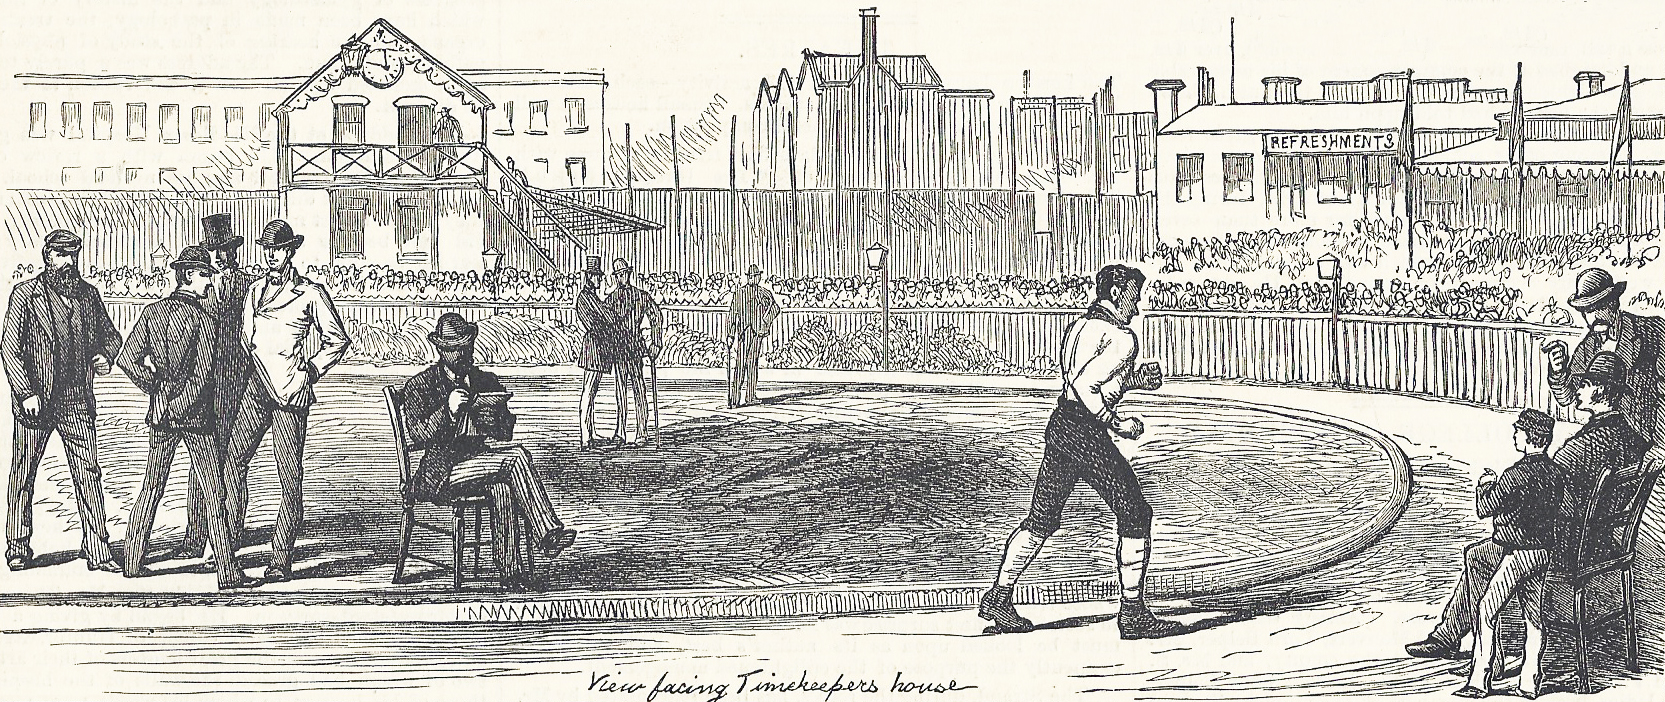 William Gale completing 1500 miles in 1000 hours in 1877. Supplement to the Illustrated London News, 6 October, 1877